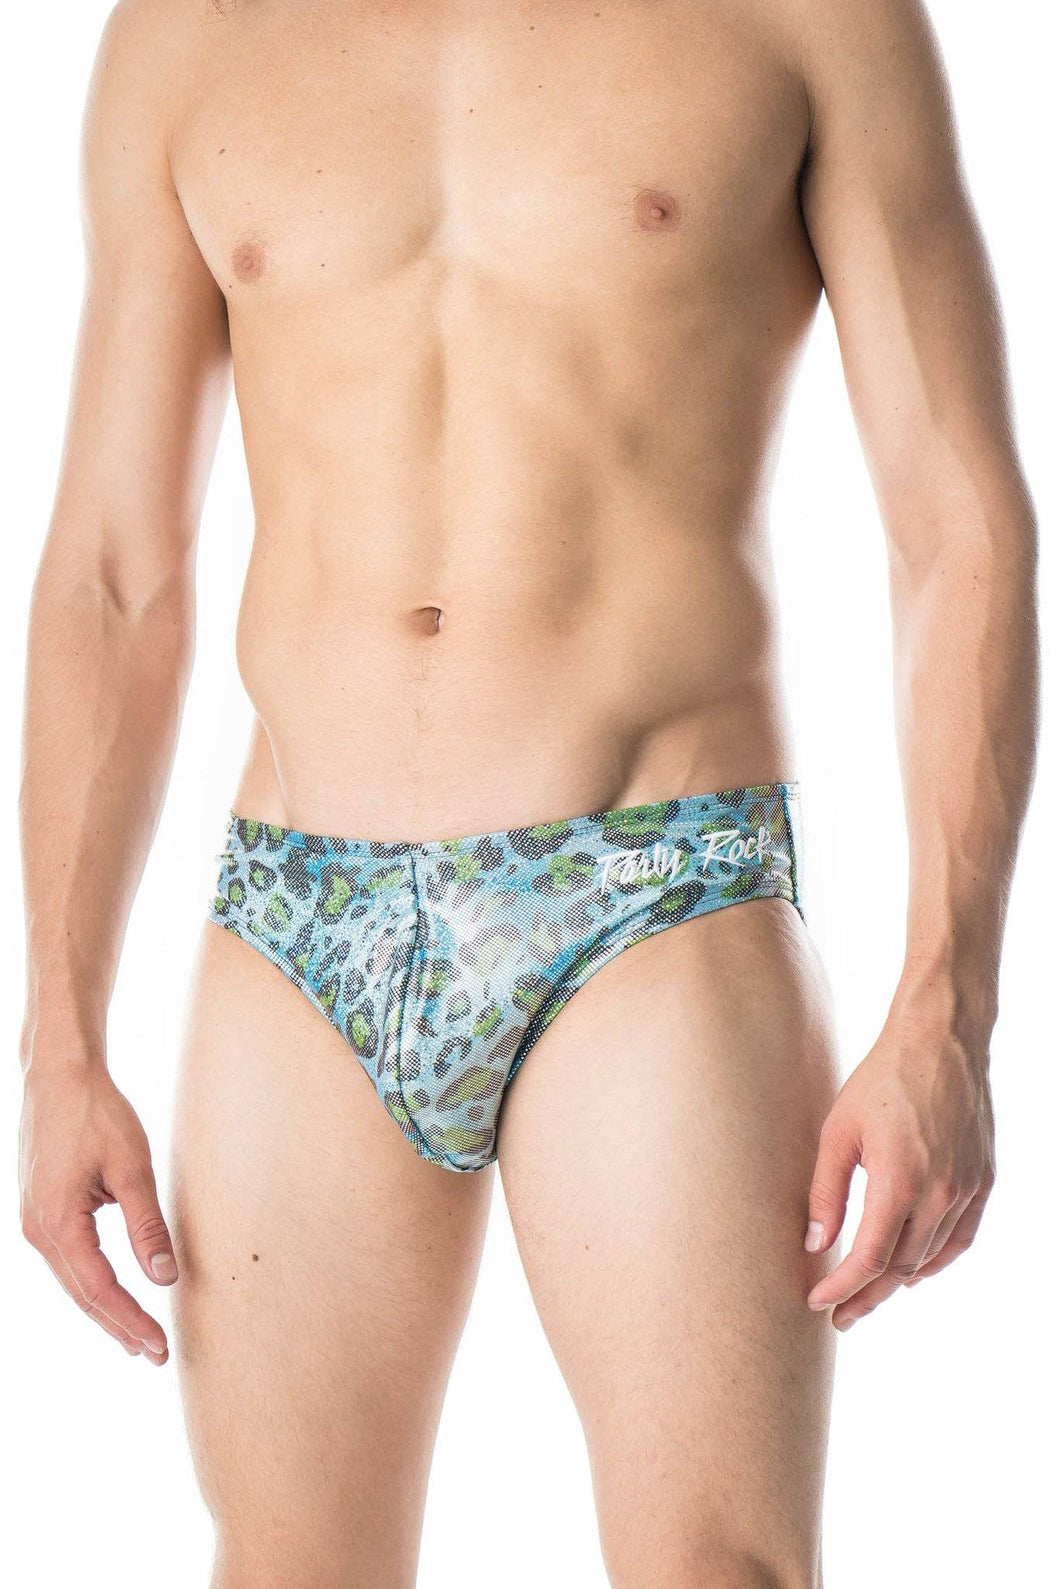 Men's Cheetah Swim Brief - Party Rock Clothing REDFOO LMFAO